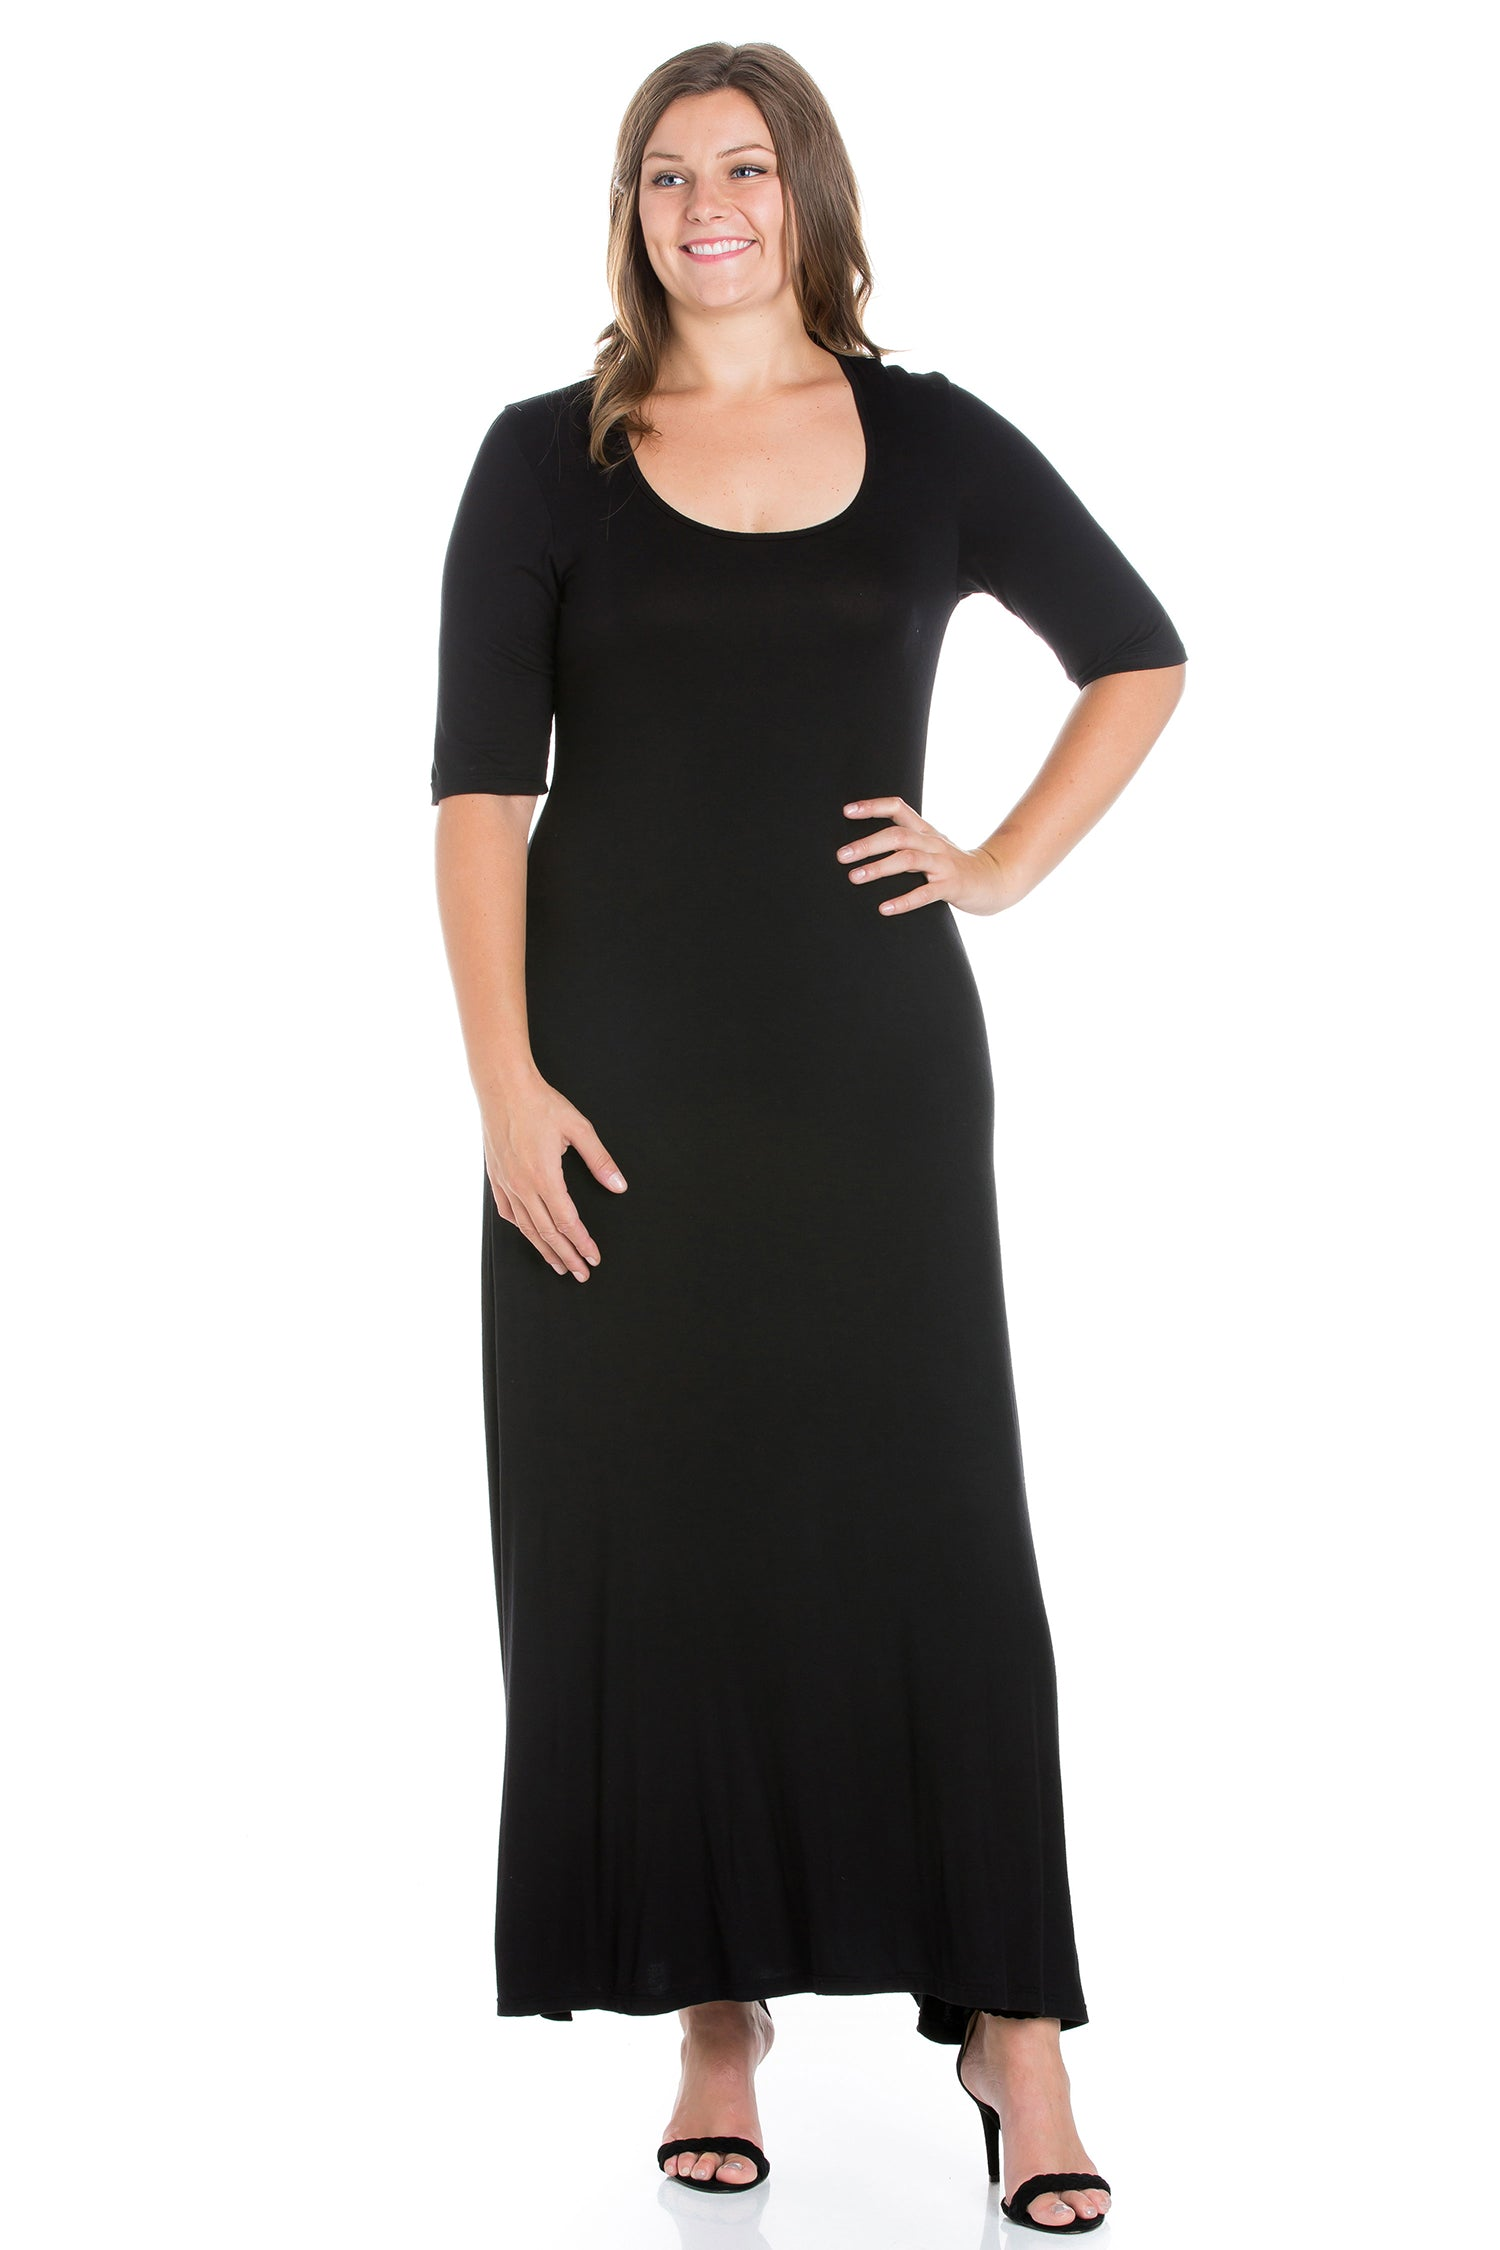 24seven Comfort Apparel Elbow Length Sleeve Plus Size Maxi Dress-DRESSES-24Seven Comfort Apparel-BLACK-1X-24/7 Comfort Apparel